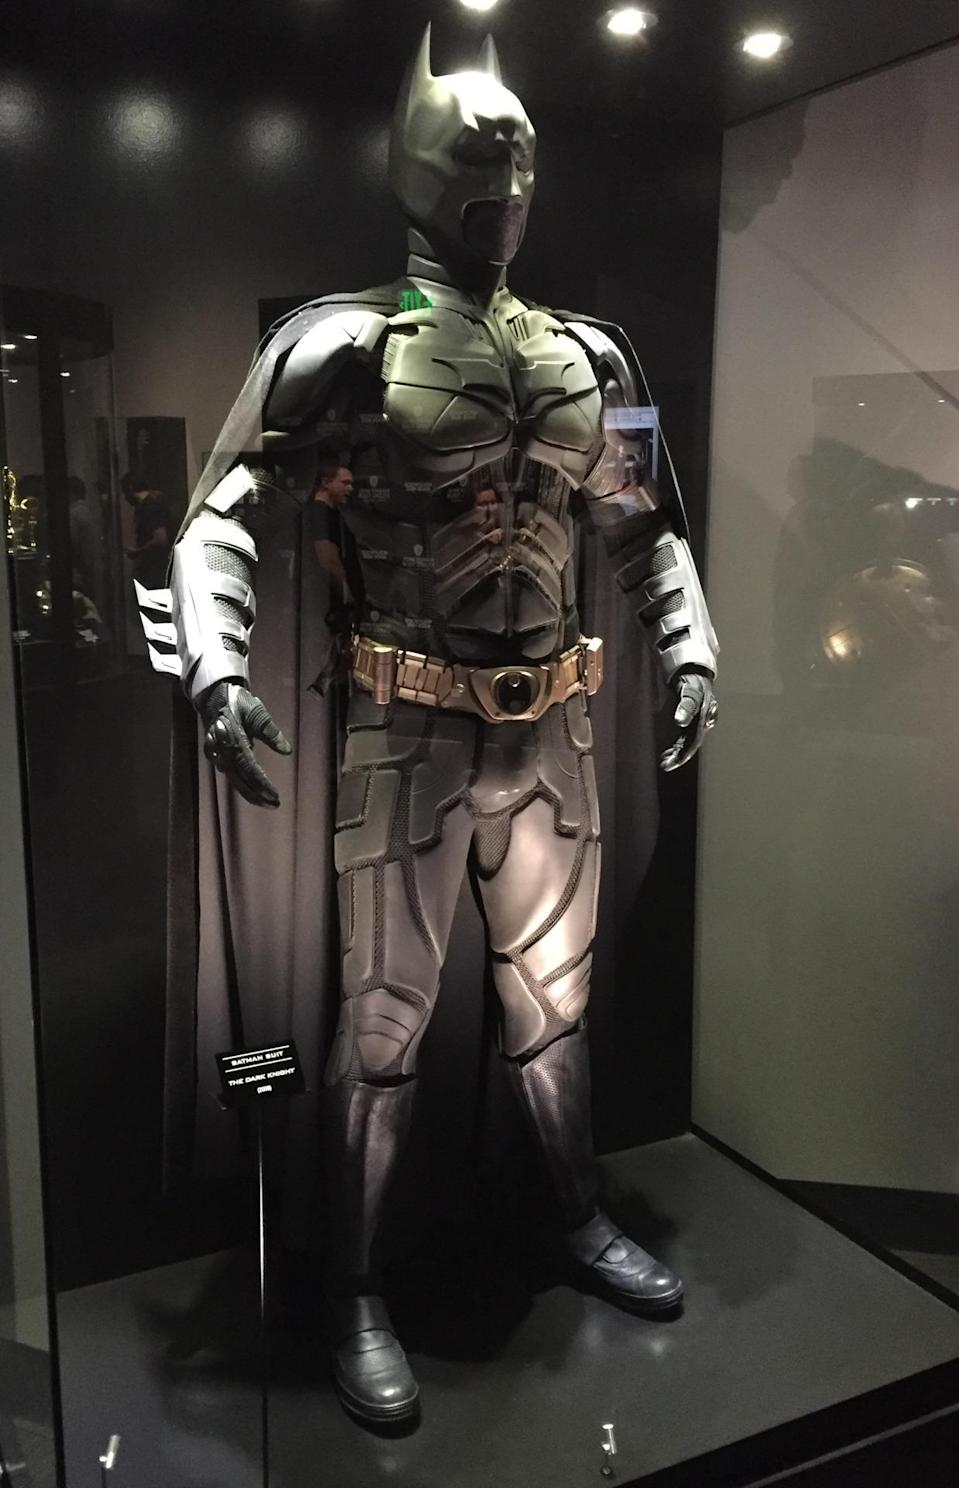 <p>Christian Bale's Caped Crusader get-up is displayed in the studio's interactive Warner Bros. Experience, which features props, storyboards, models, scripts, and mo-cap exhibits.</p>